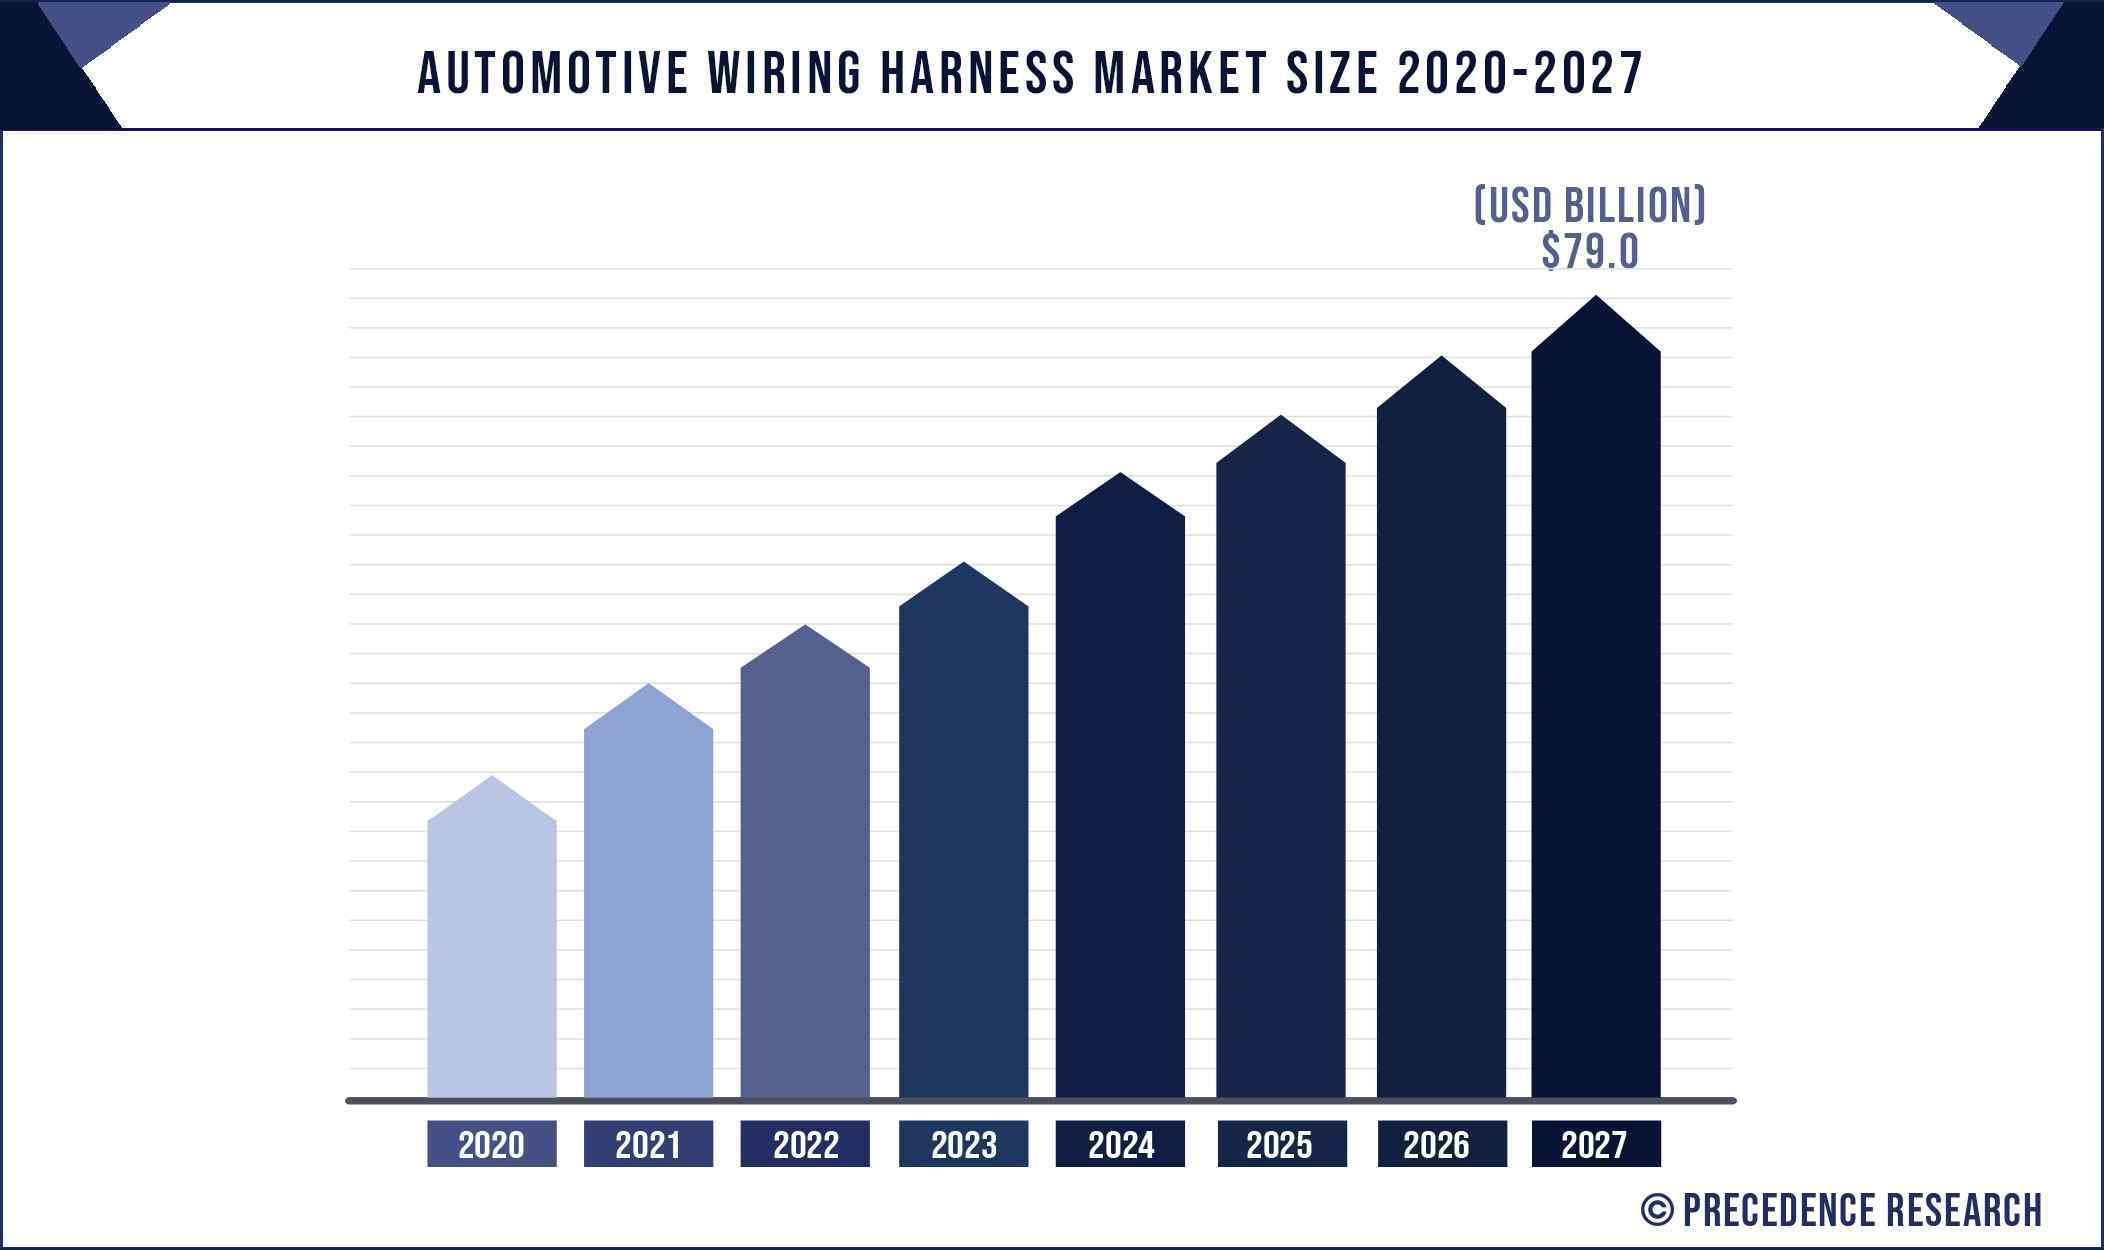 Automotive Wiring Harness Market Size 2020 To 2027